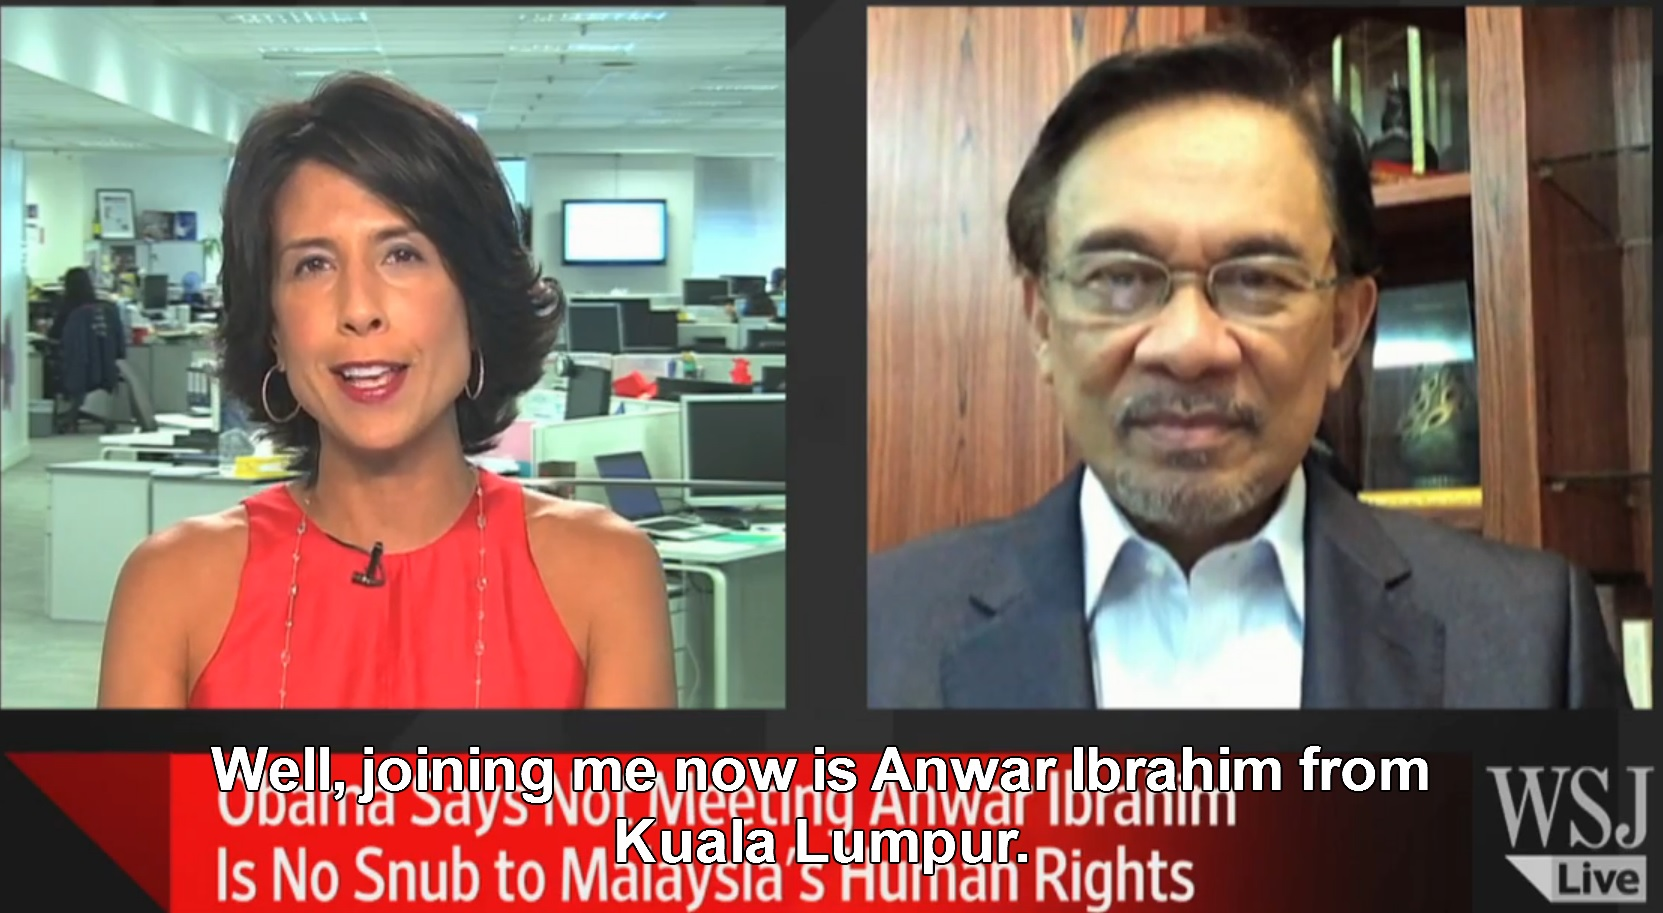 WSJ: Malaysia Opposition Leader, Anwar Ibrahim's Message for Obama